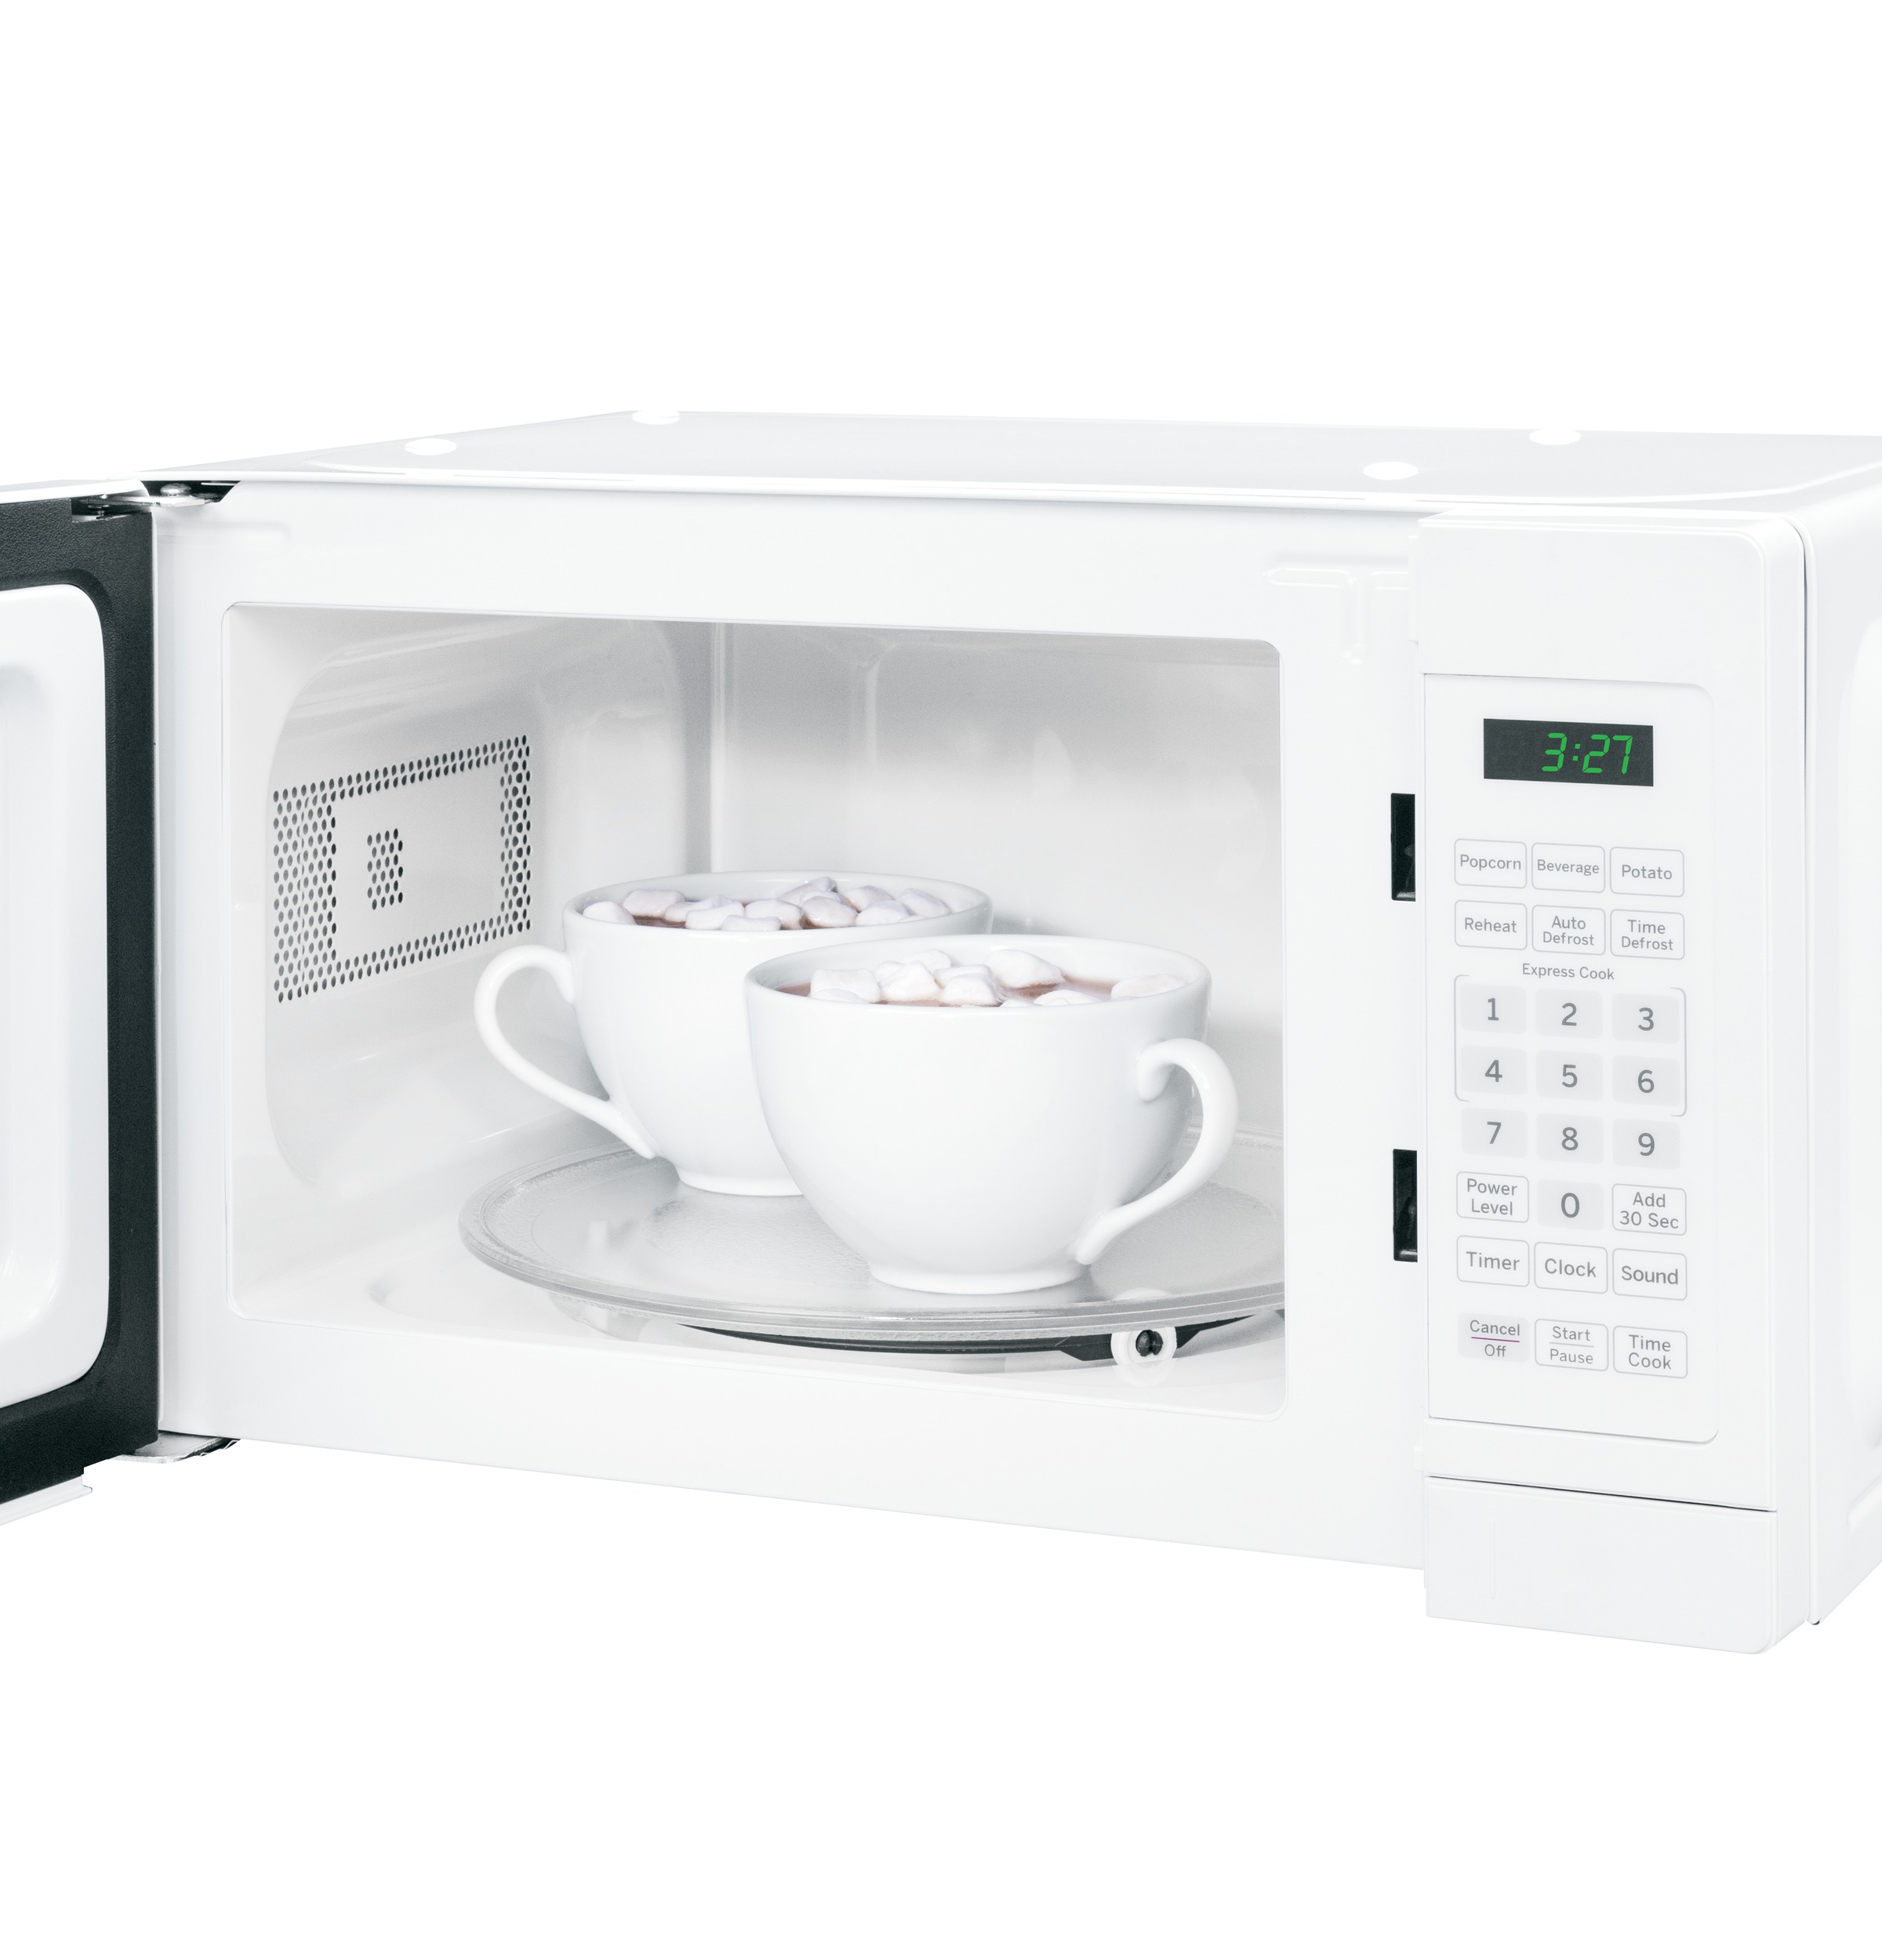 countertop foot retro image microwave reviews product in countertops nostalgia rated customer pcr helpful ovens best oven axwtuil cubic